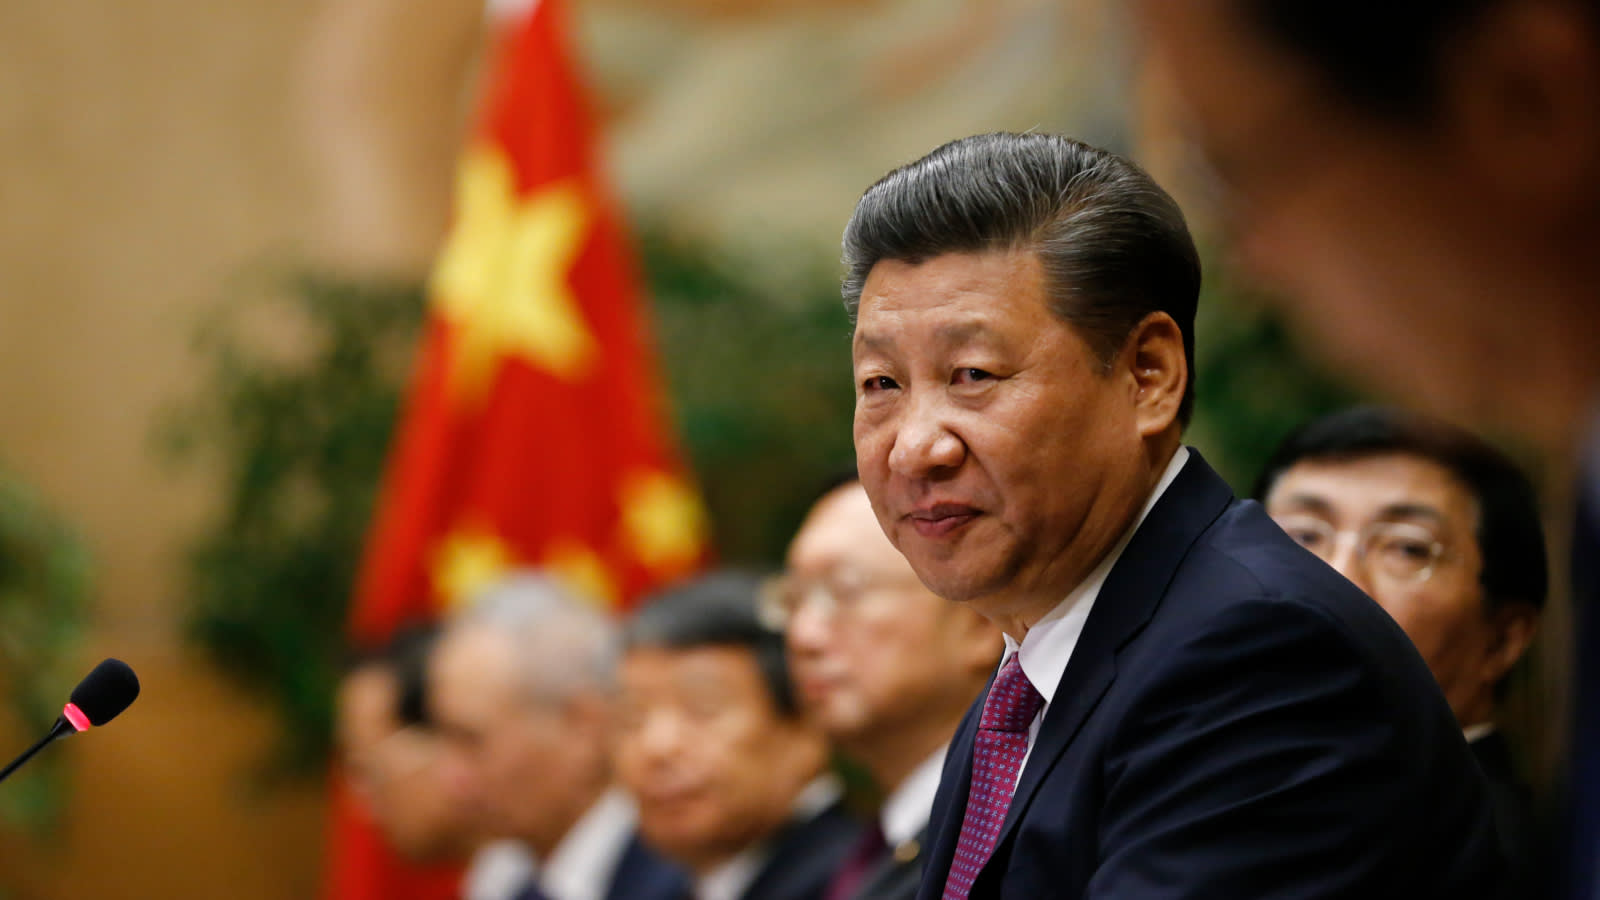 Le président chinois Xi Jinping. (Source : Nikkei Asian Review)